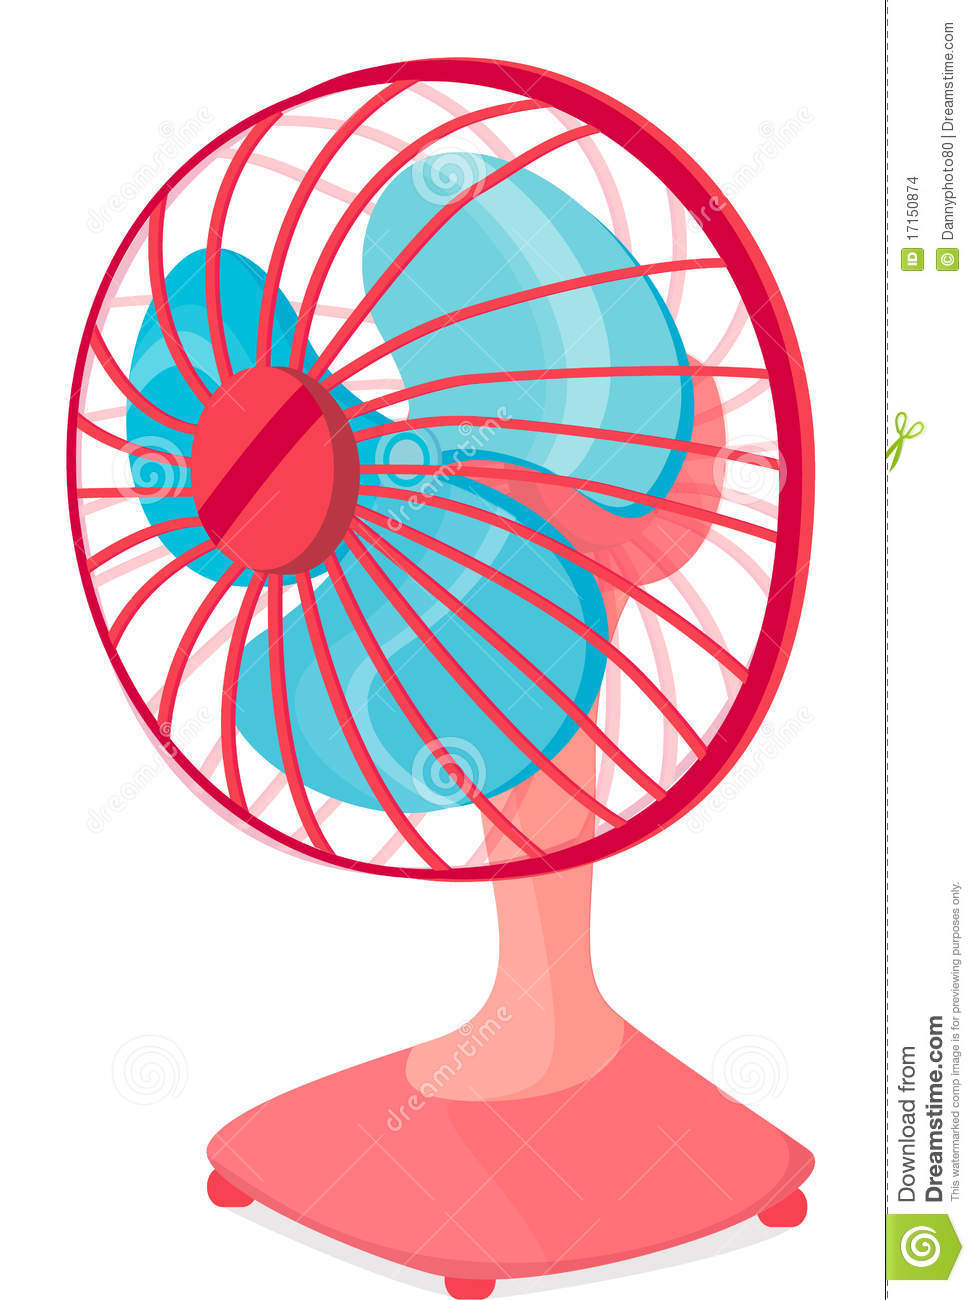 Table fan stock vector. Illustration of sketch, cool ...